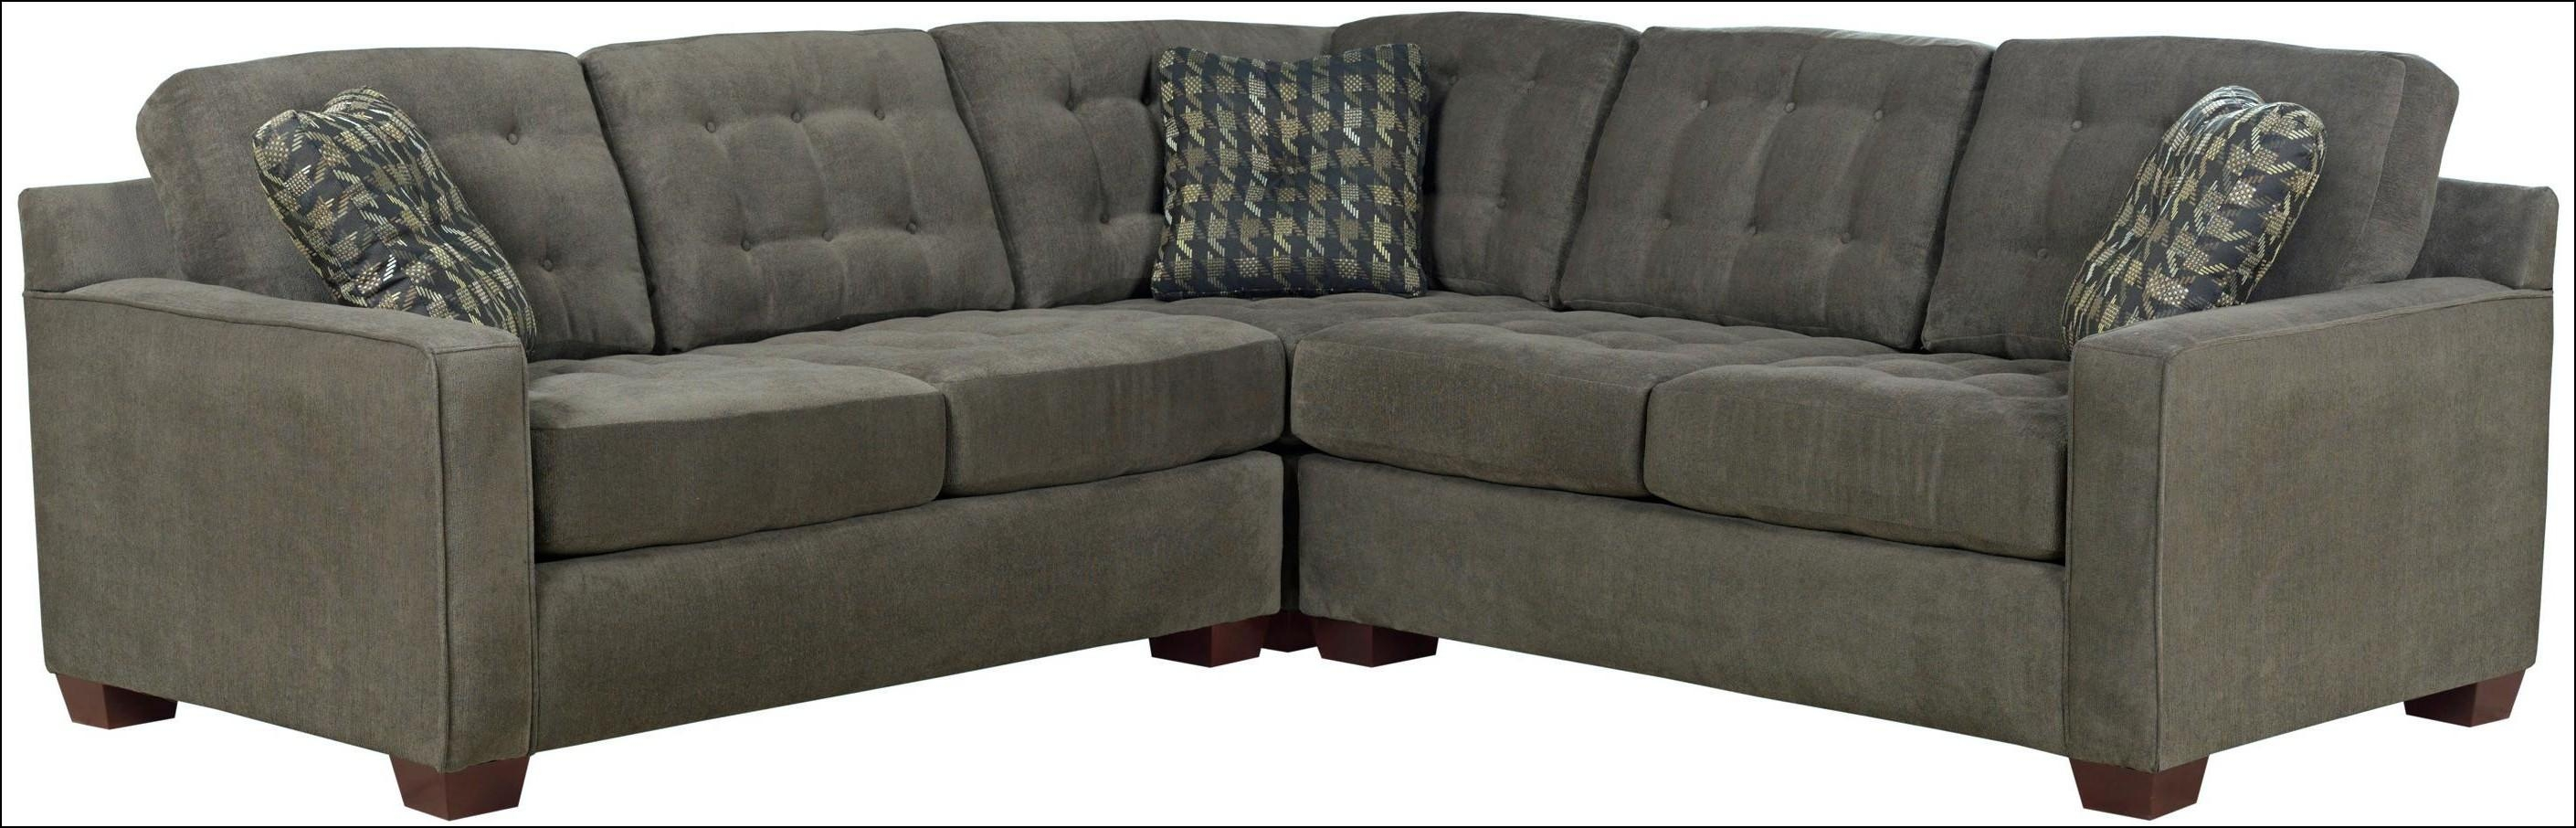 Furniture: Small Sectional Sofas For Small Spaces | Craigslist With Craigslist Sectional Sofas (Image 10 of 20)